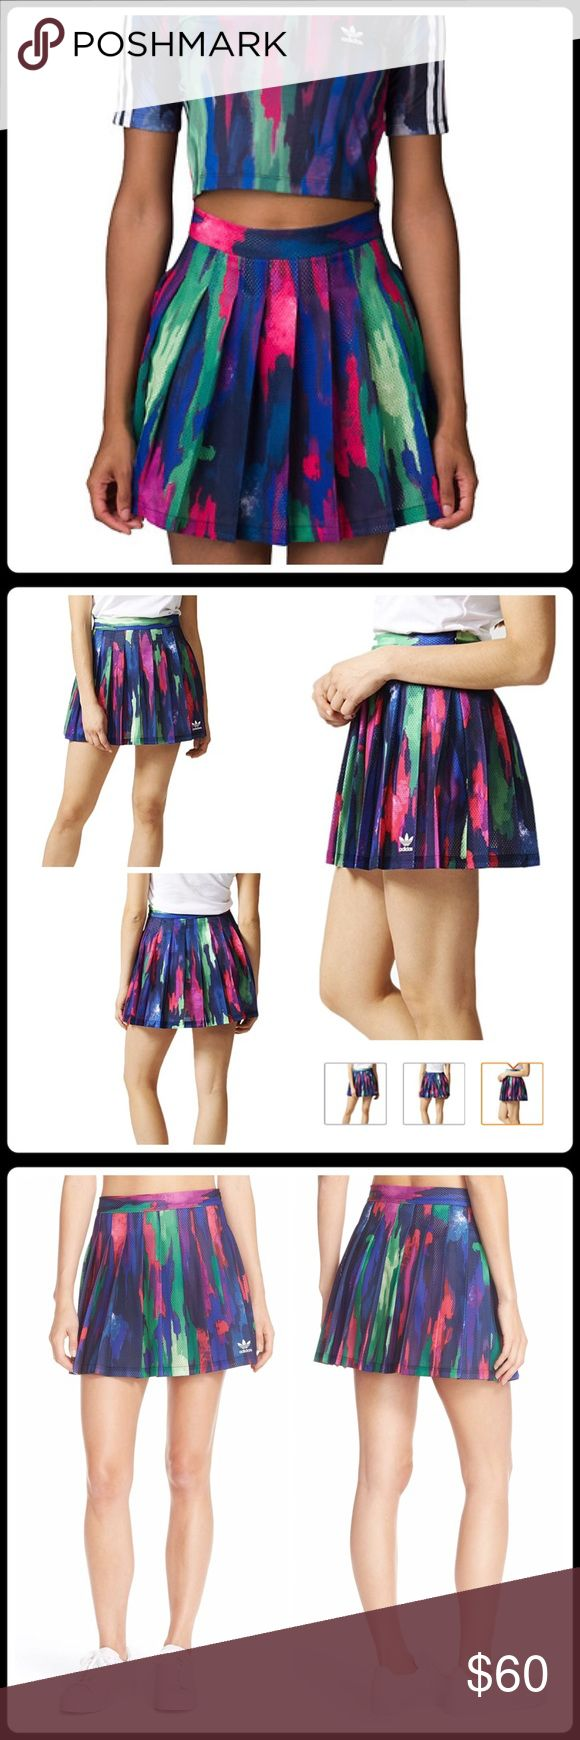 """JUST IN 🆕 'CAMO TREE' PLEATED SKIRT NWT-Rainbow camouflage defines this sporty skirt flared by airy mesh pleats—part of an exuberantly colored collection designed with music mogul Pharrell Williams in celebration of diversity. -16 1/2"""" length -Unlined -1"""